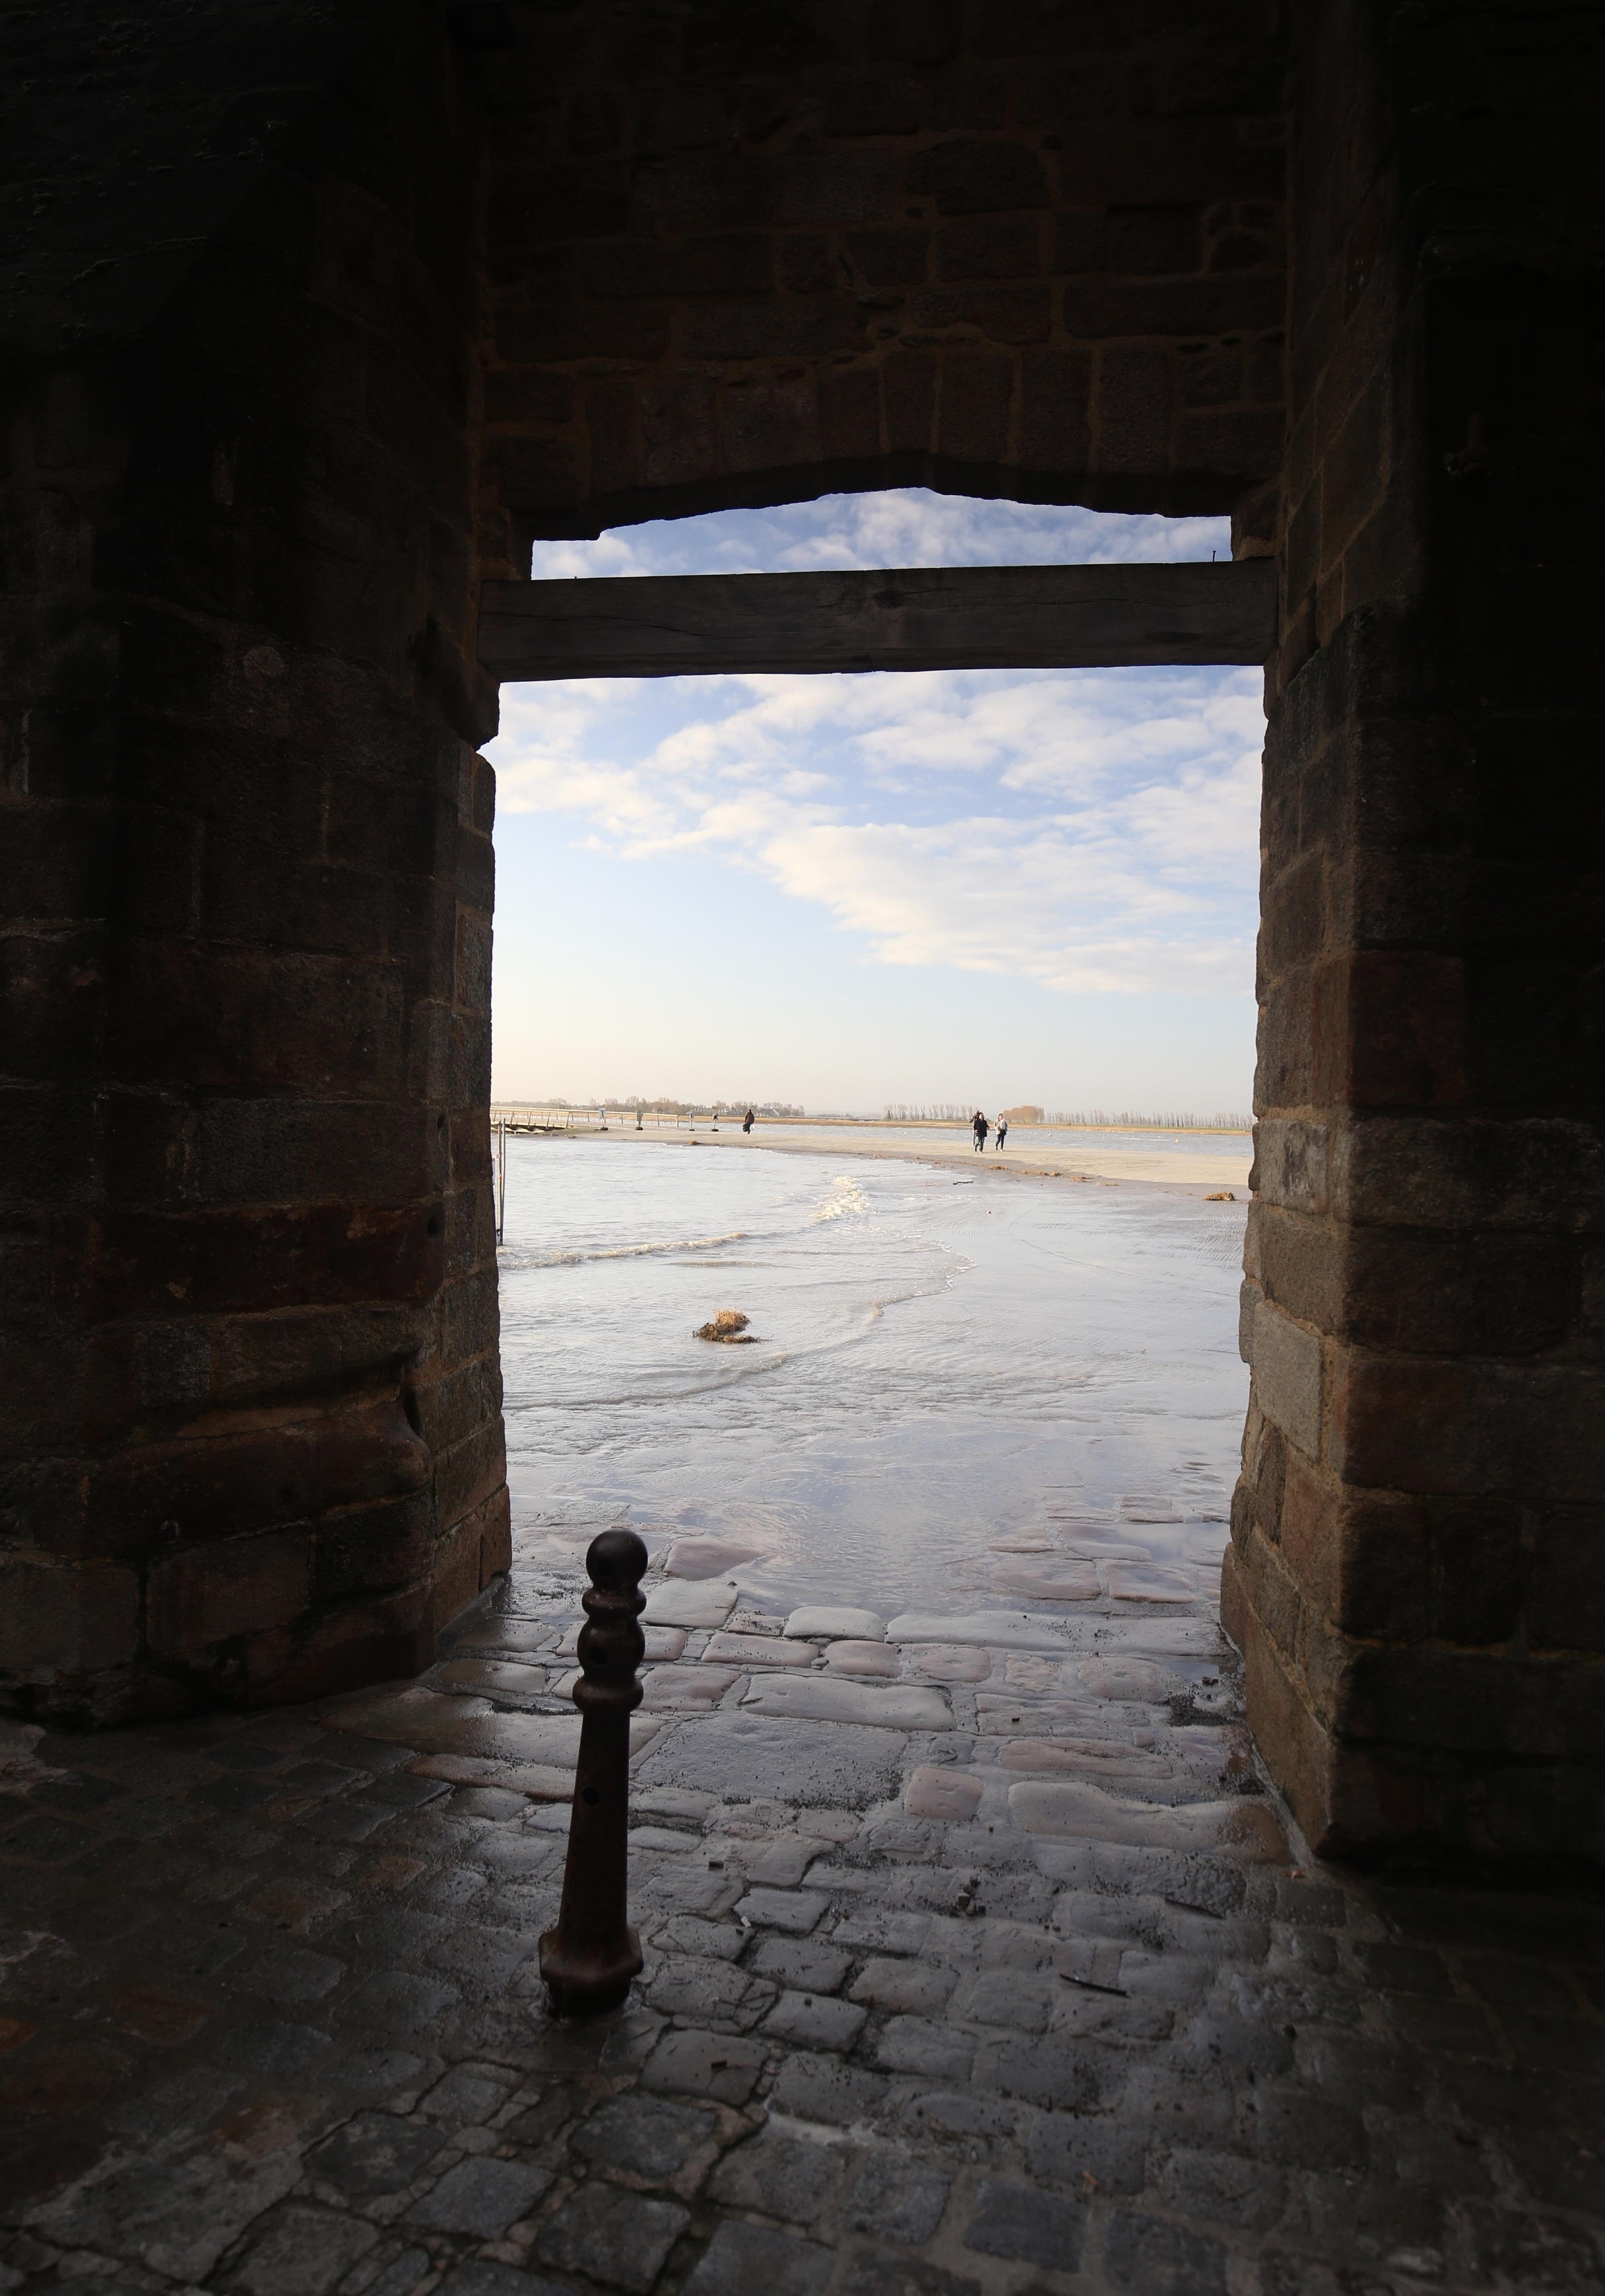 The high tide at Mont Saint Michel - with waves lapping at the stone door to the island.